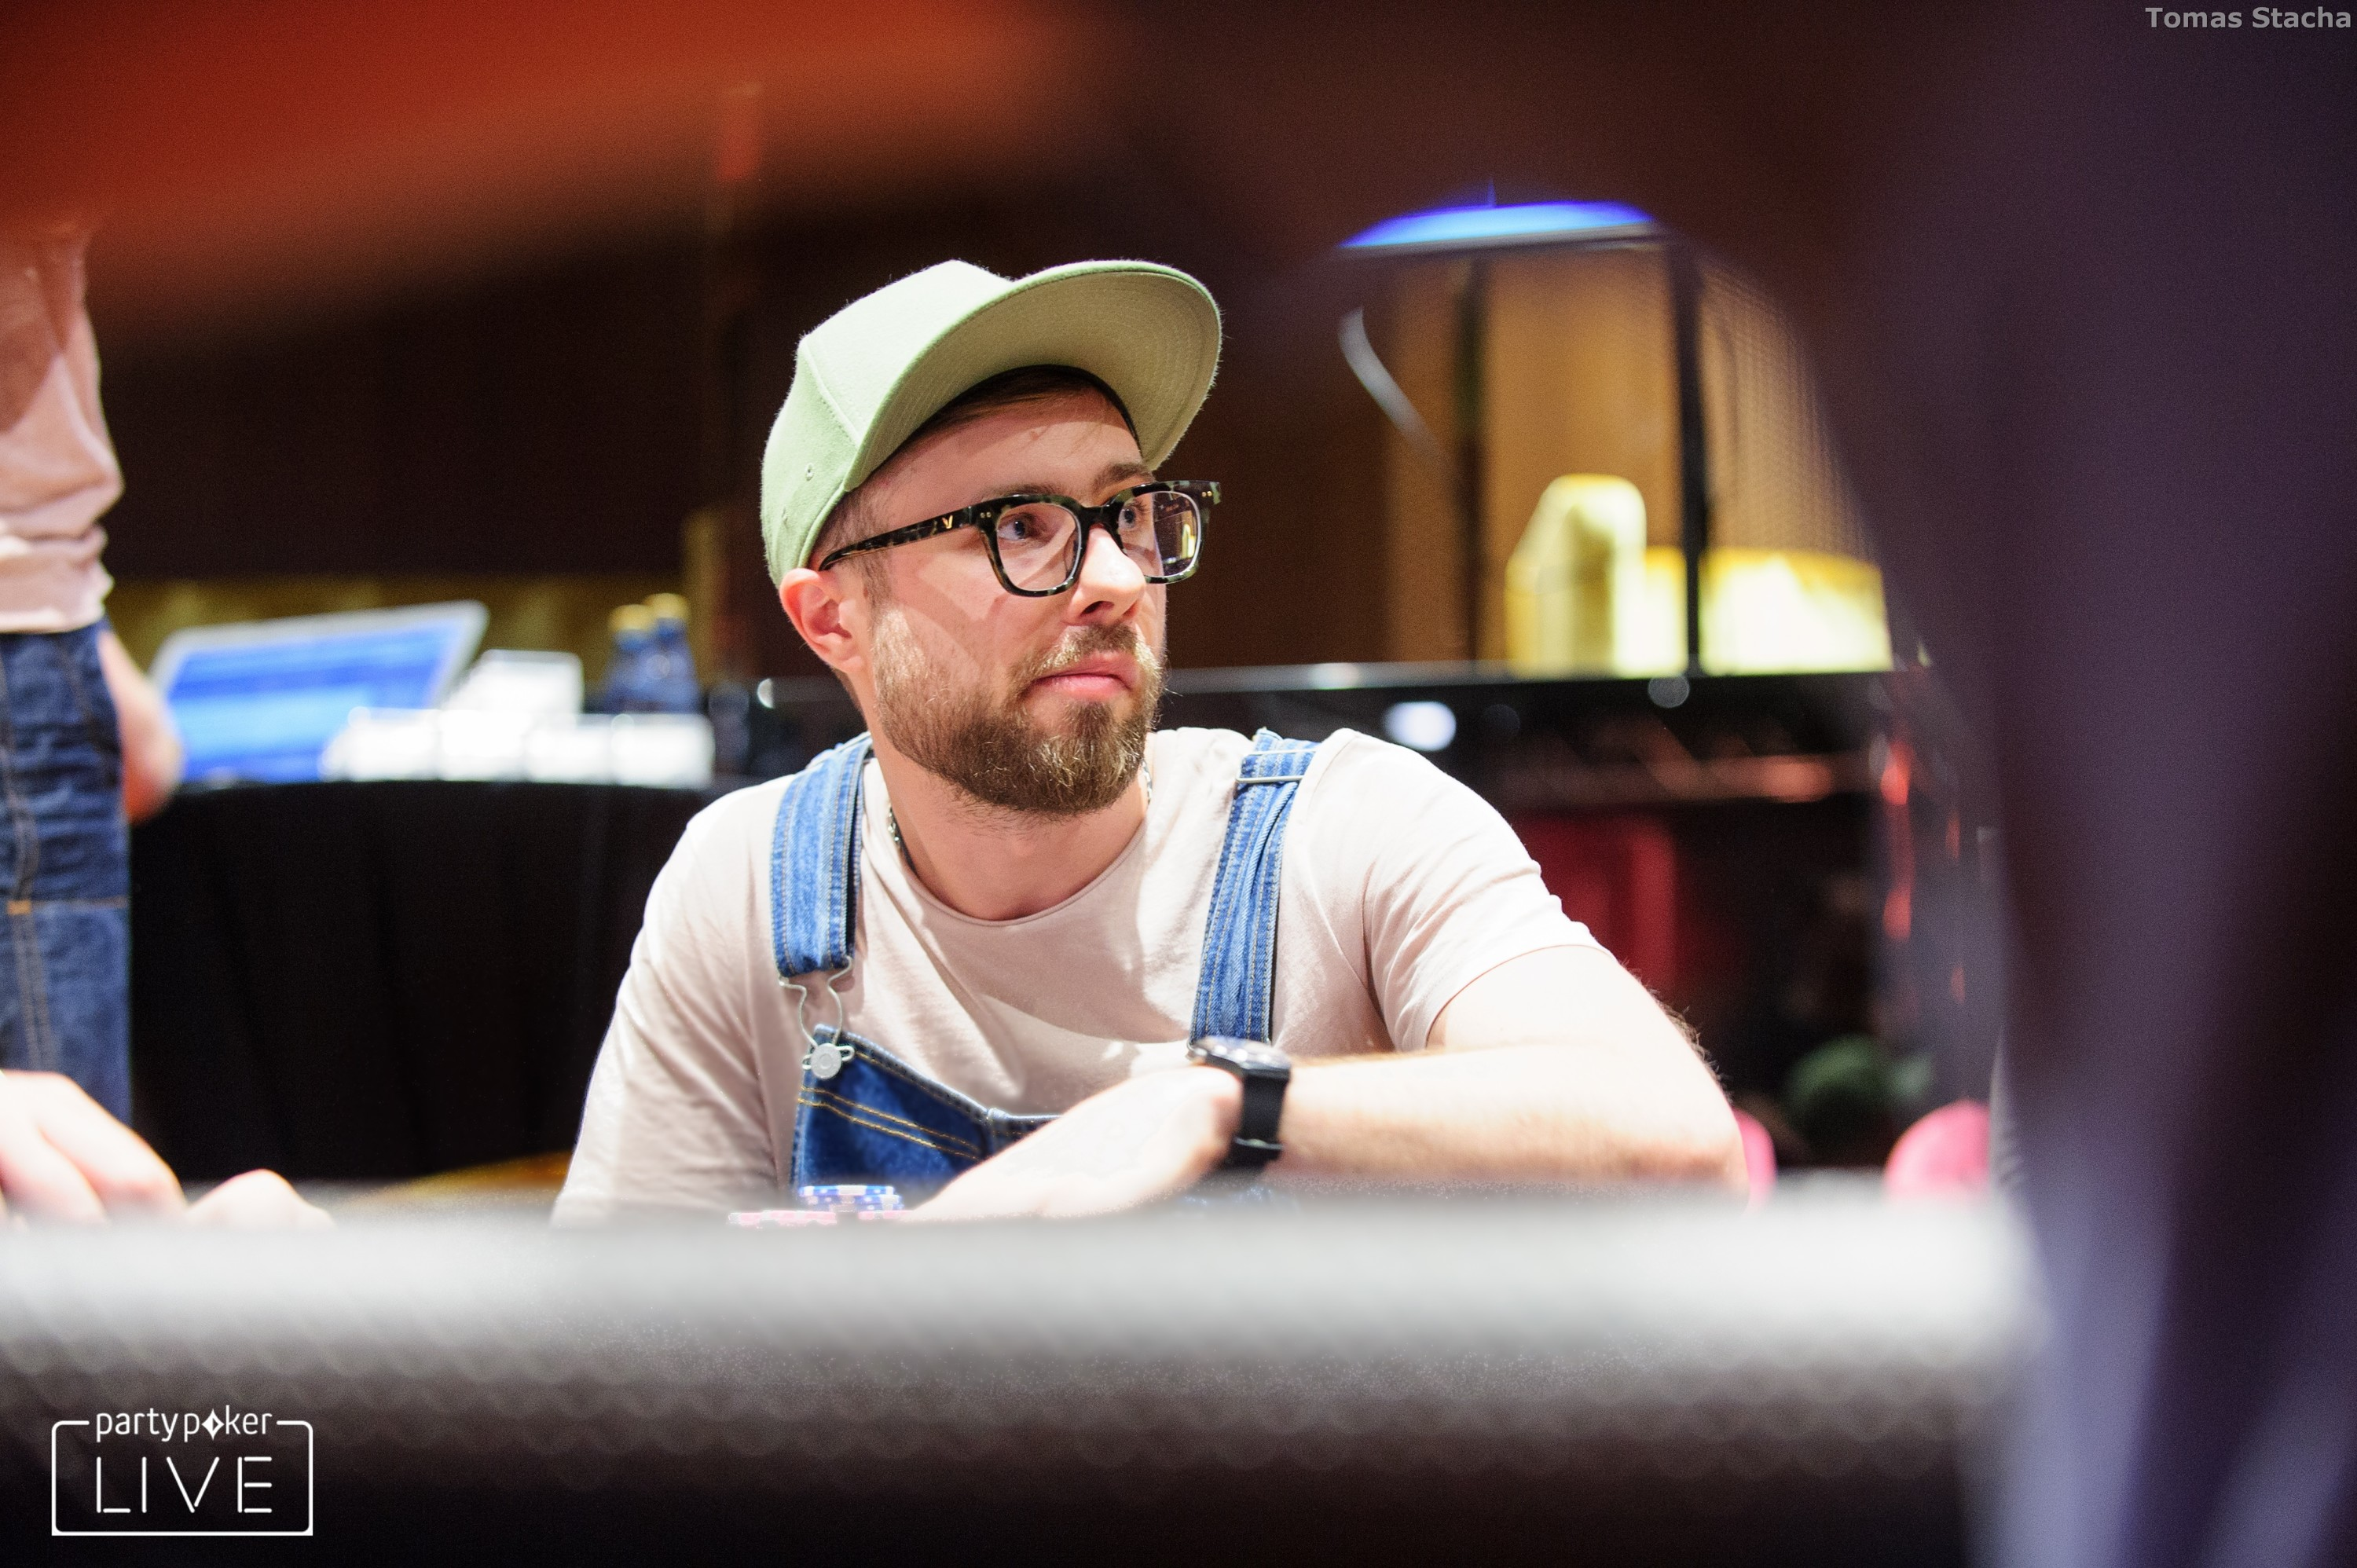 Kravchuk Bags Over Five Million In Partypoker Live Millions Russia